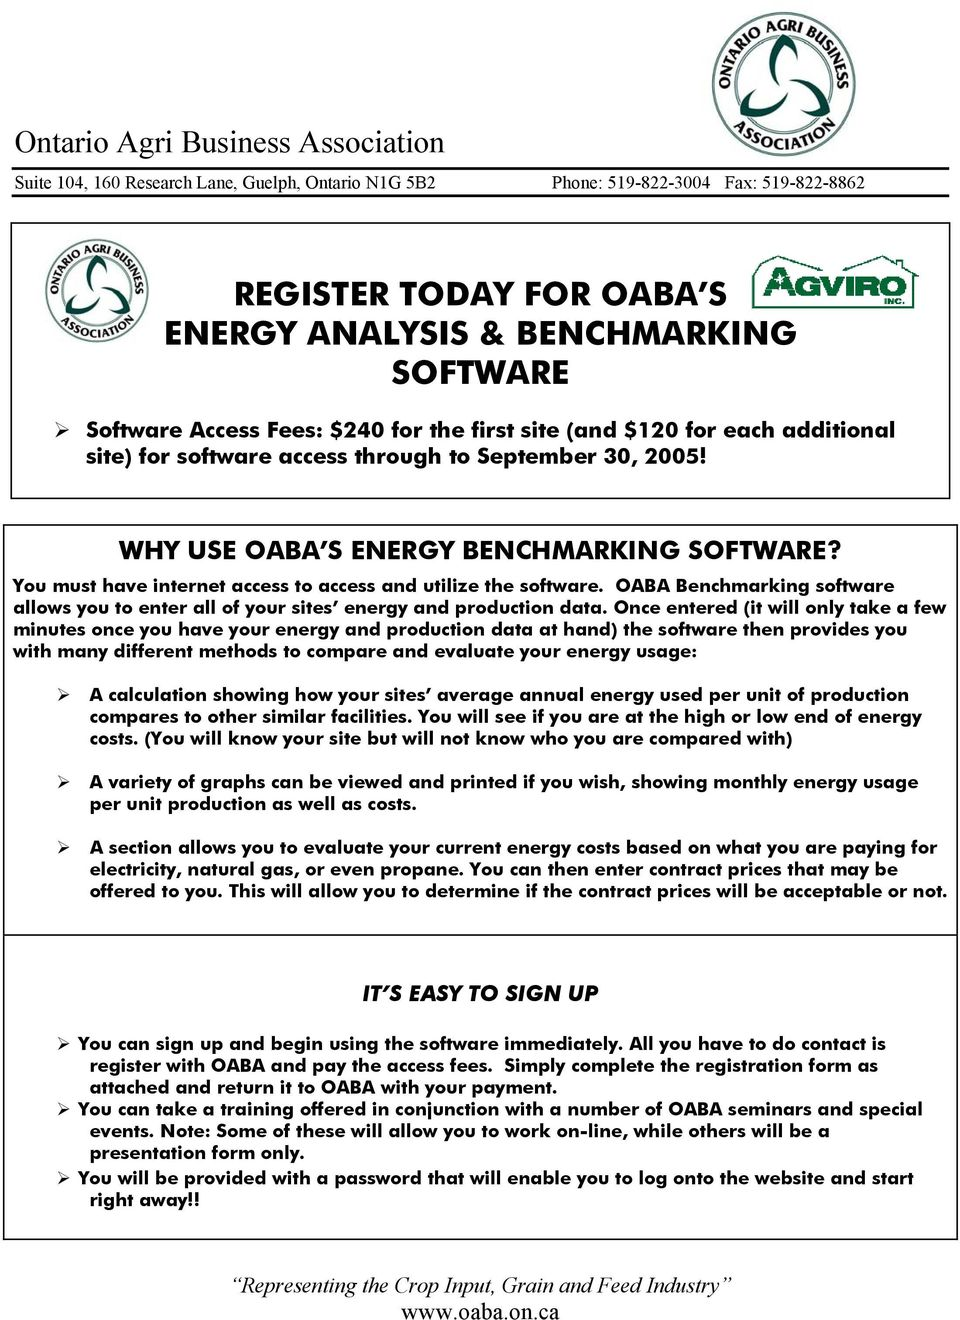 You must have internet access to access and utilize the software. OABA Benchmarking software allows you to enter all of your sites energy and production data.